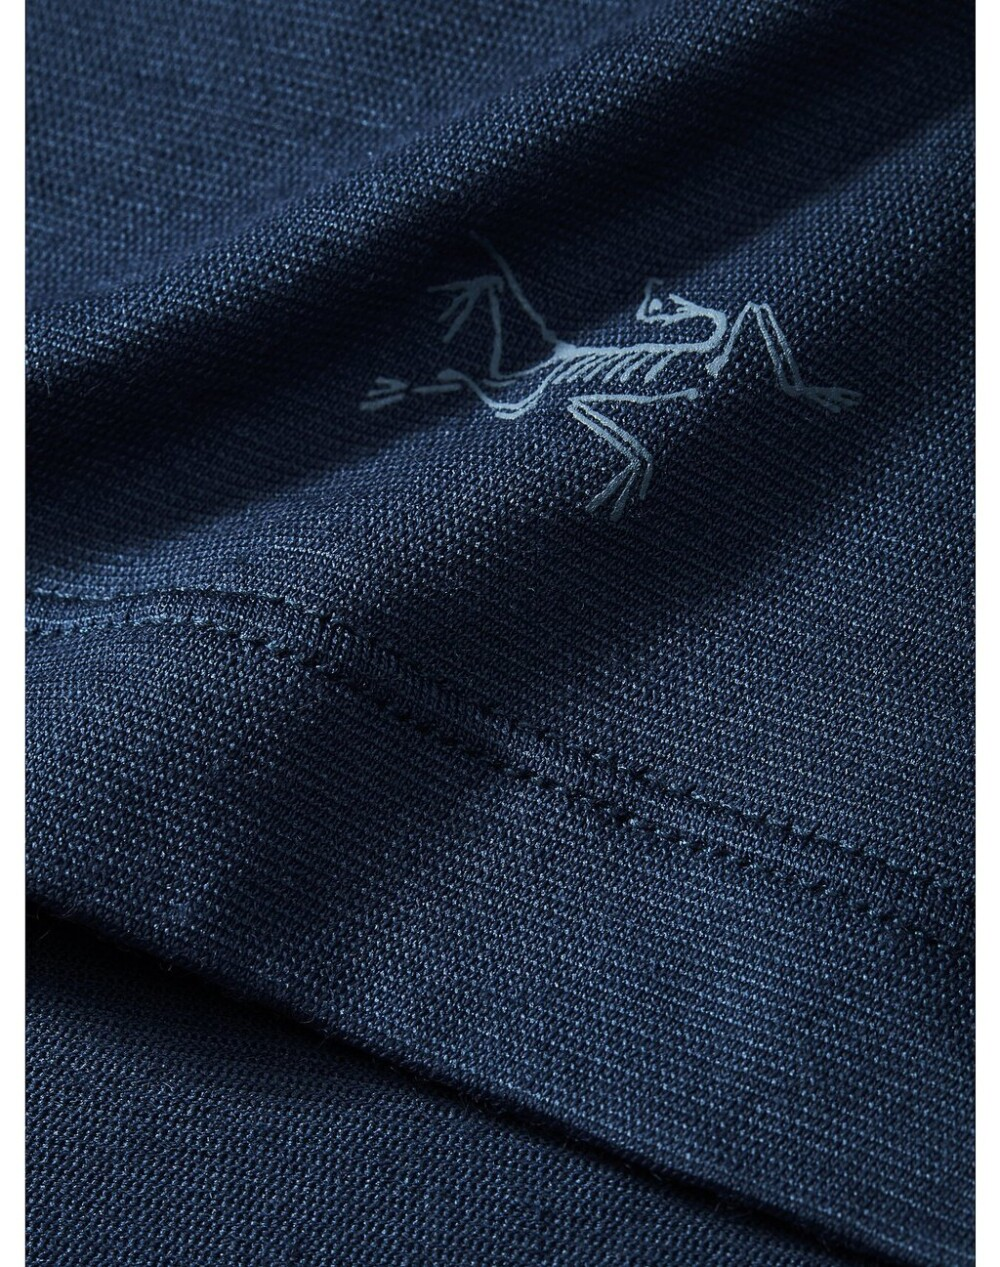 【ARC'TERYX】Father's Day ギフト